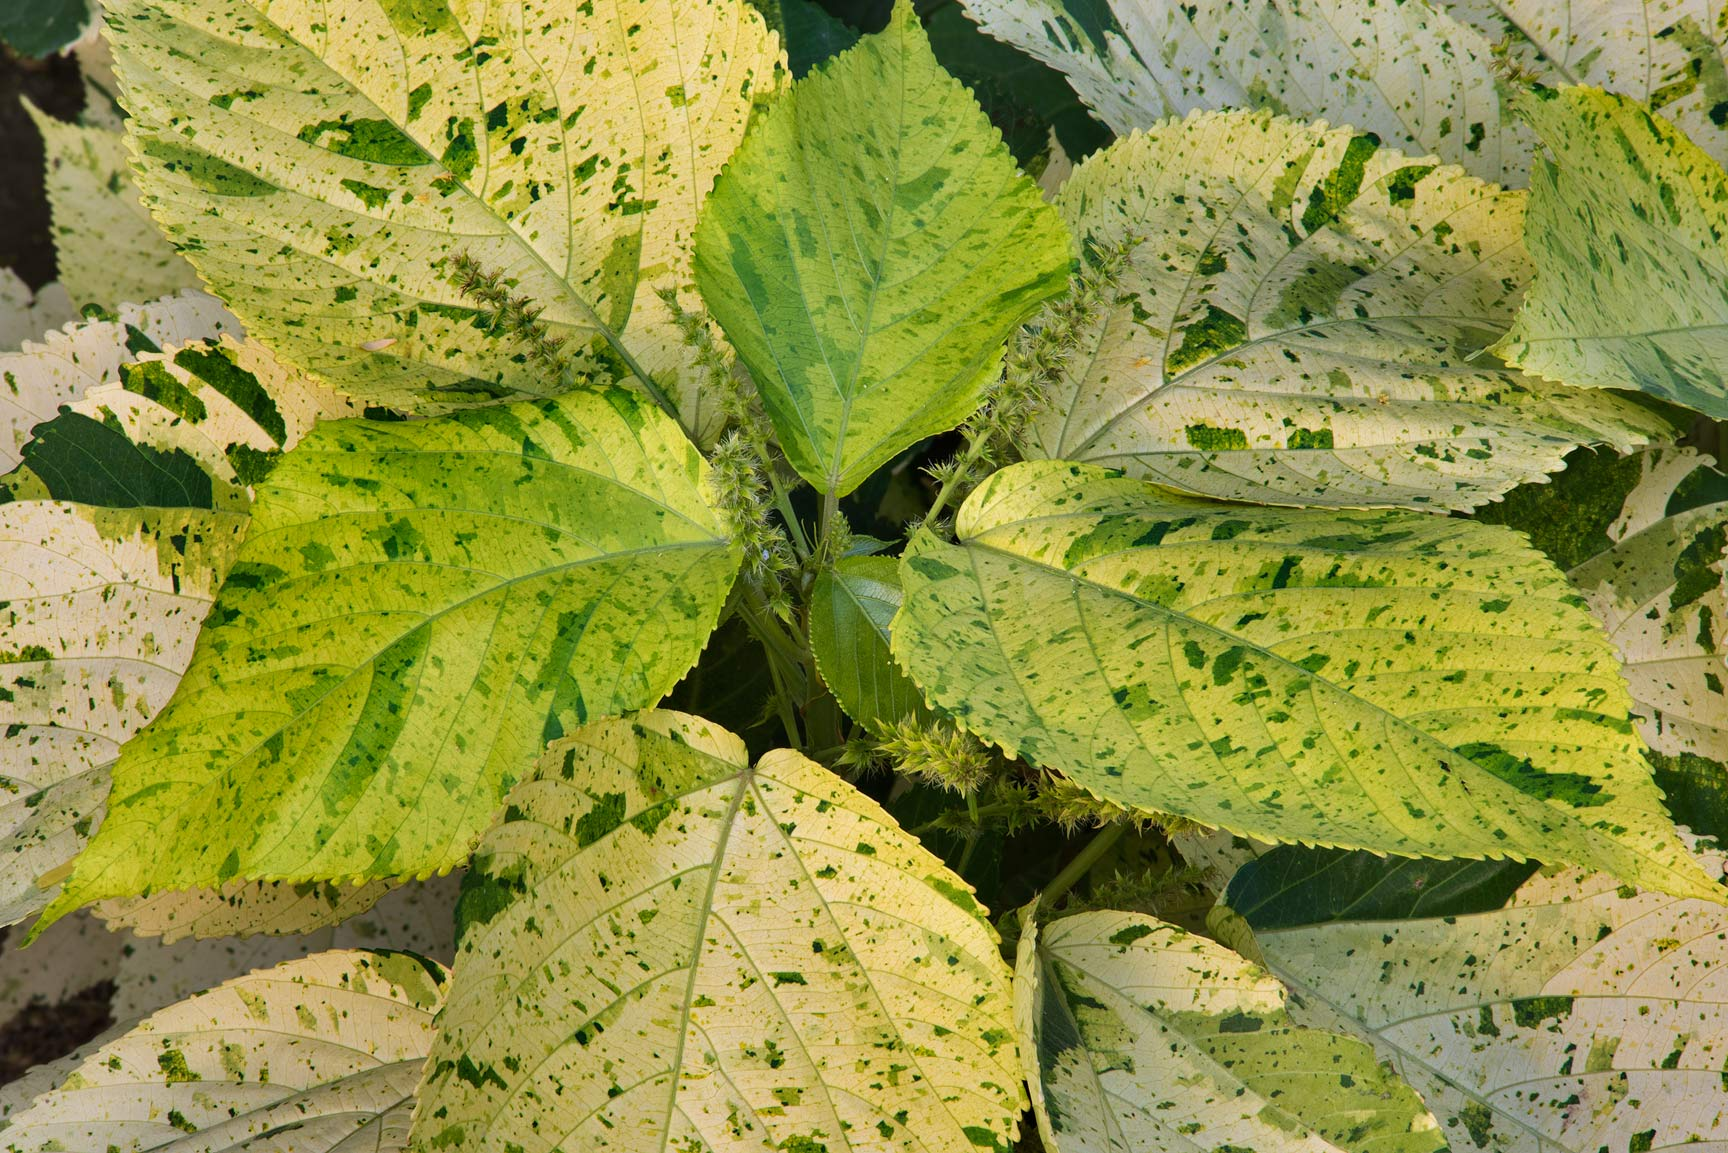 Mottled leaves of Acalypha variegata in Dahl Al Hamam Park at Al Markhiya St.. Doha, Qatar